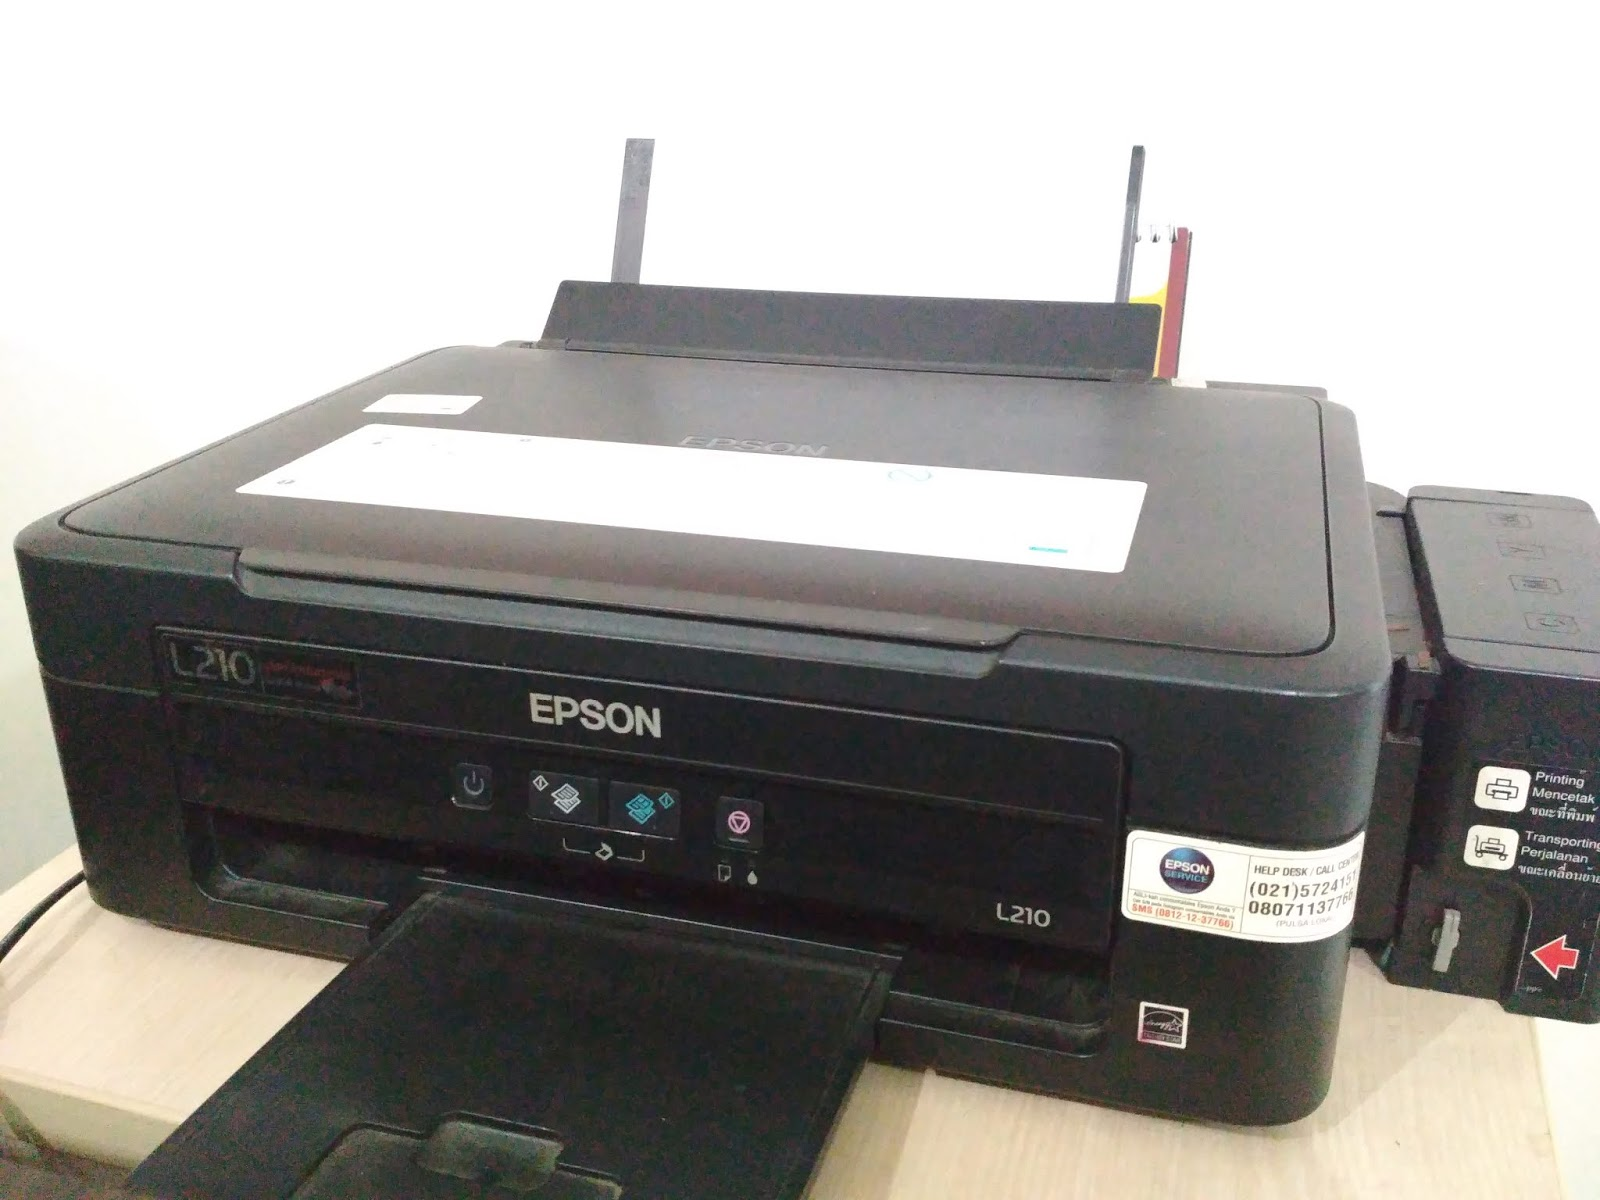 ✨ Epson l220 printer driver download for windows 7 (32bits